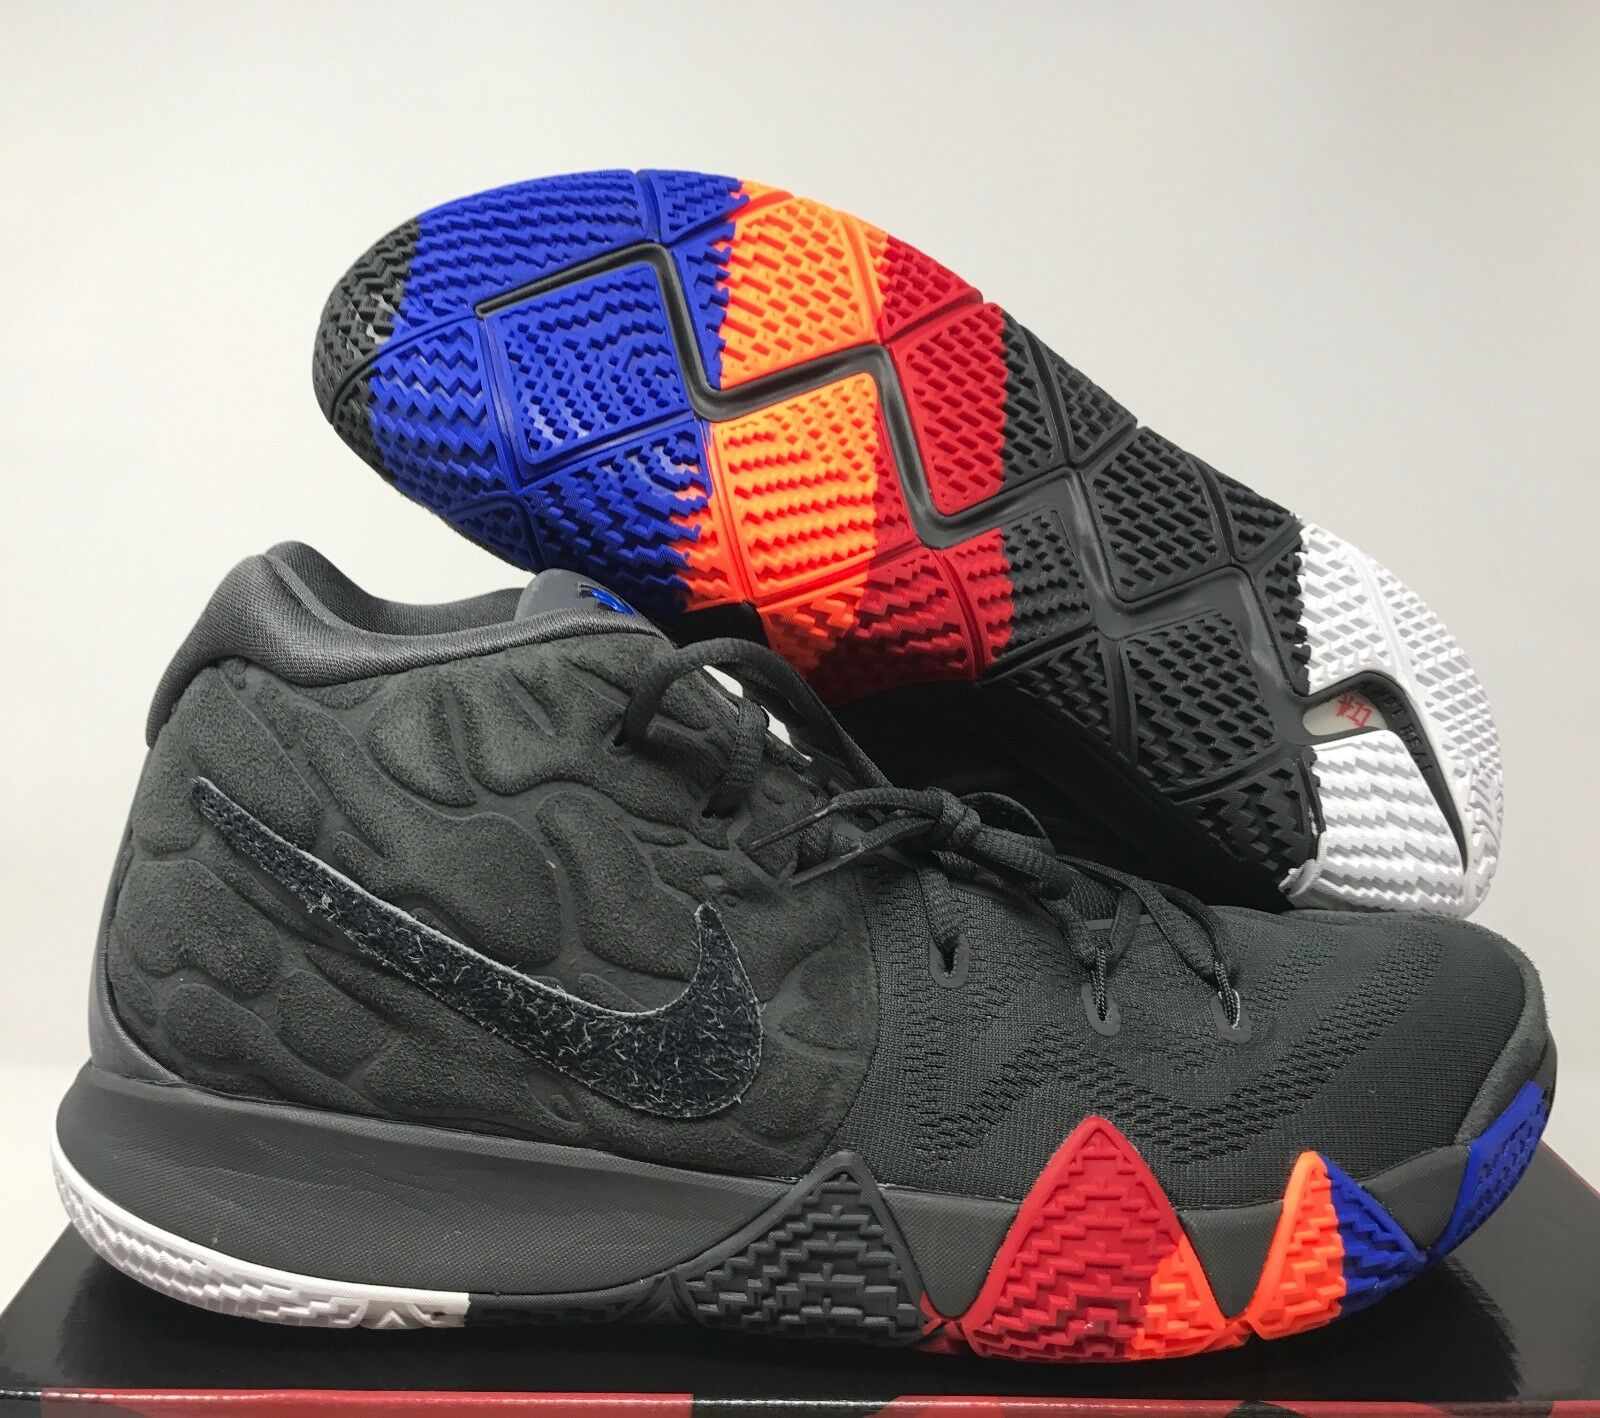 NIKE KYRIE 4 YEAR OF THE MONKEY ANTHRACITE-BLACK SZ 16 [943806-011]